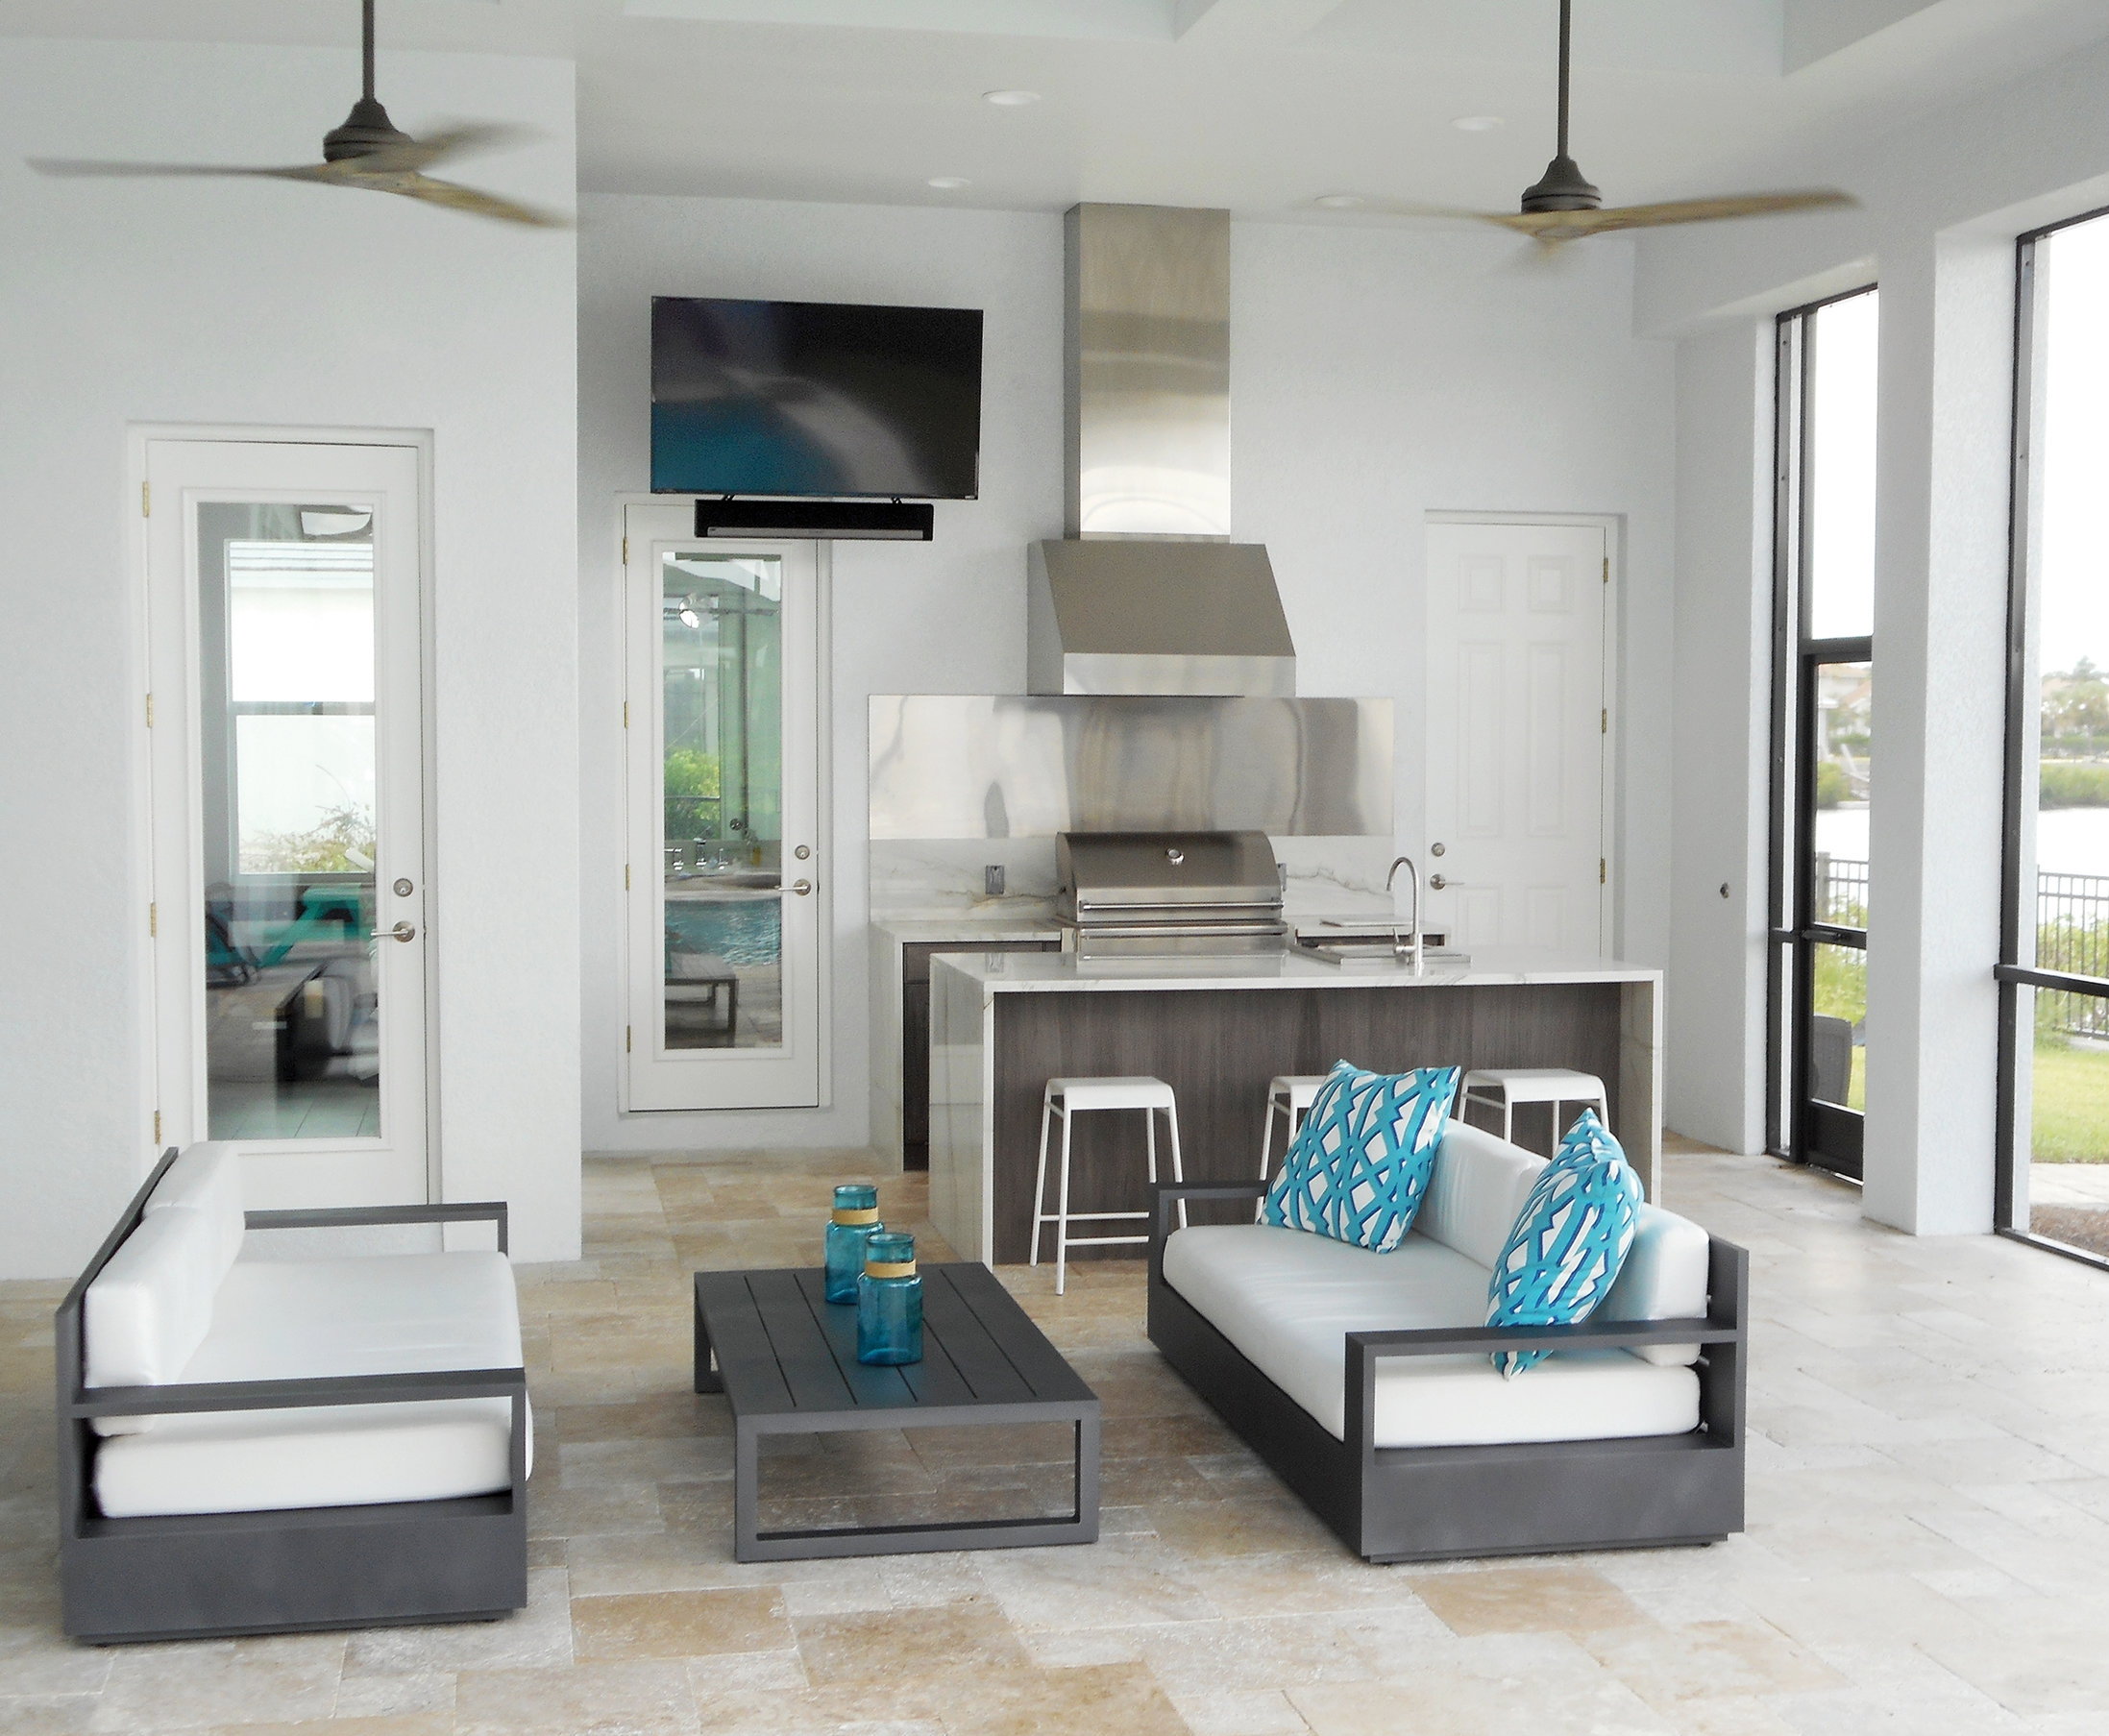 outdoor-kitchen-place-your-home-magazine1.jpg